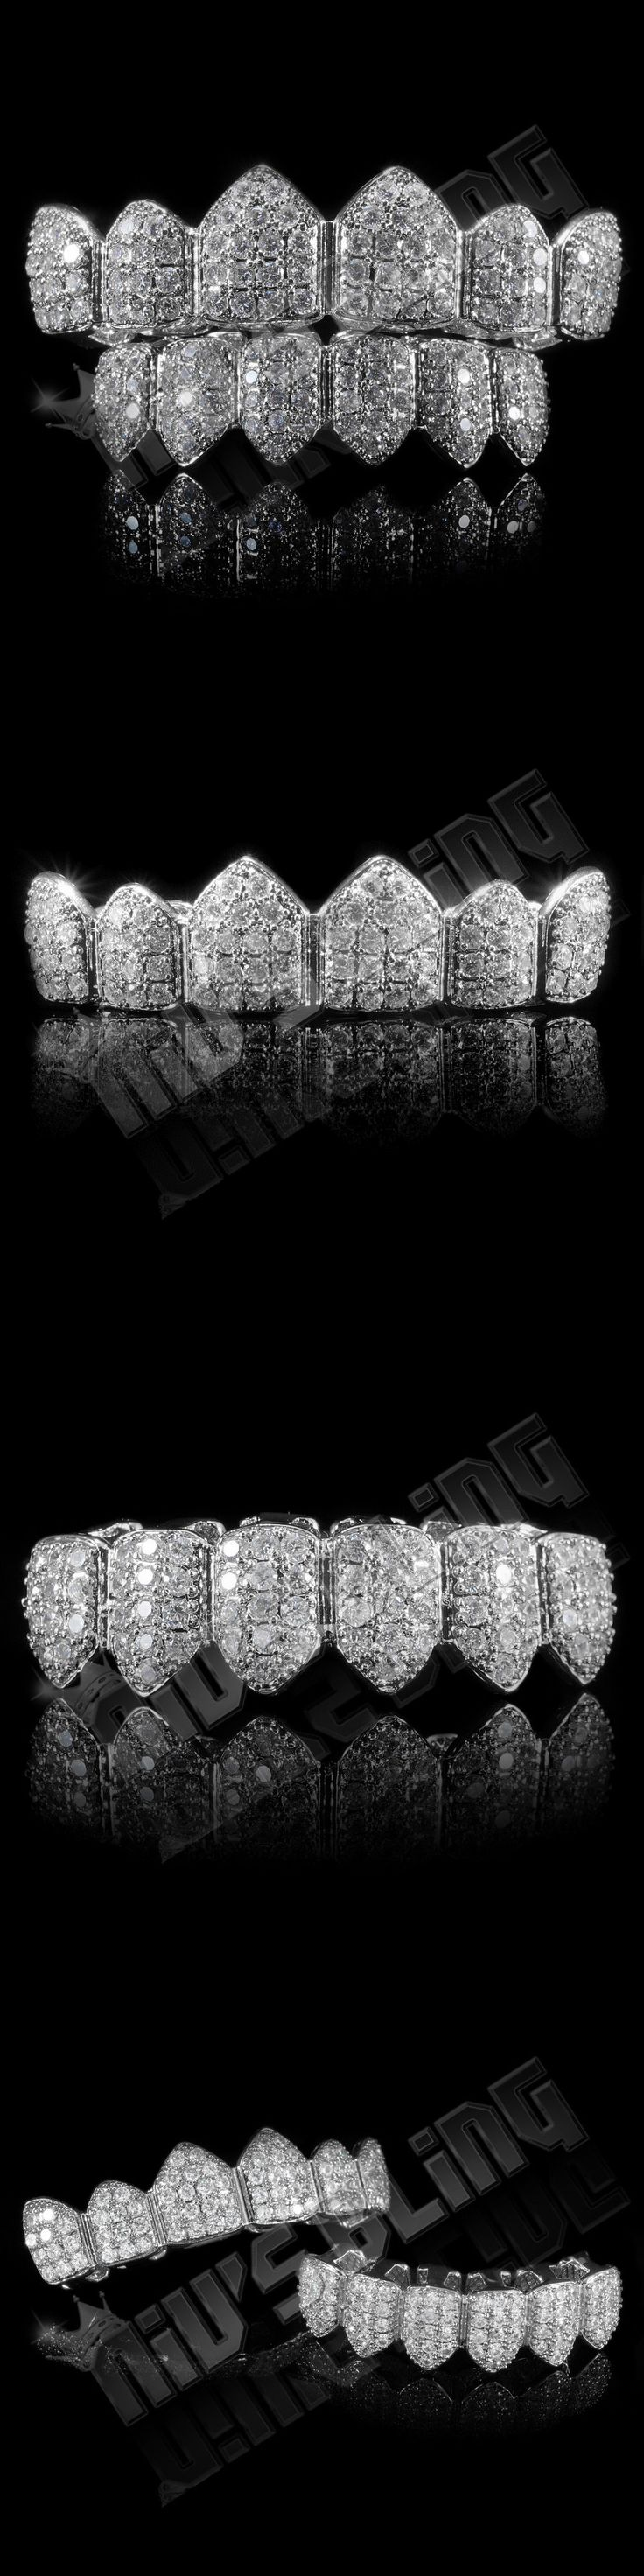 Grillz Dental Grills 152808: 18K White Gold Plated Custom Slugs Cz Top Bottom Grillz Teeth Mouth Grills Set BUY IT NOW ONLY: $49.99